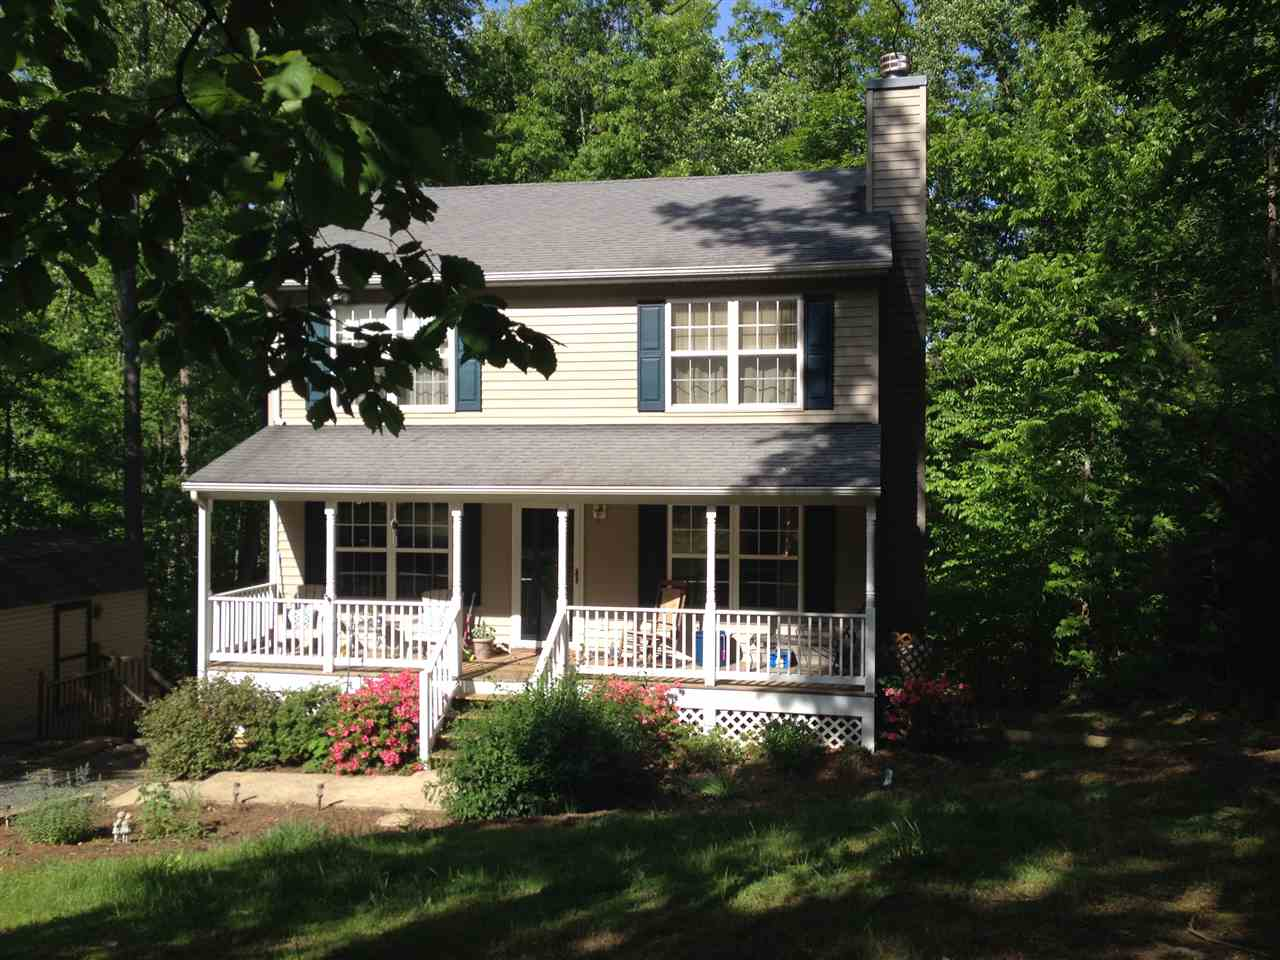 Property for sale at 53 BRIDLEWOOD DR, Palmyra,  VA 22963